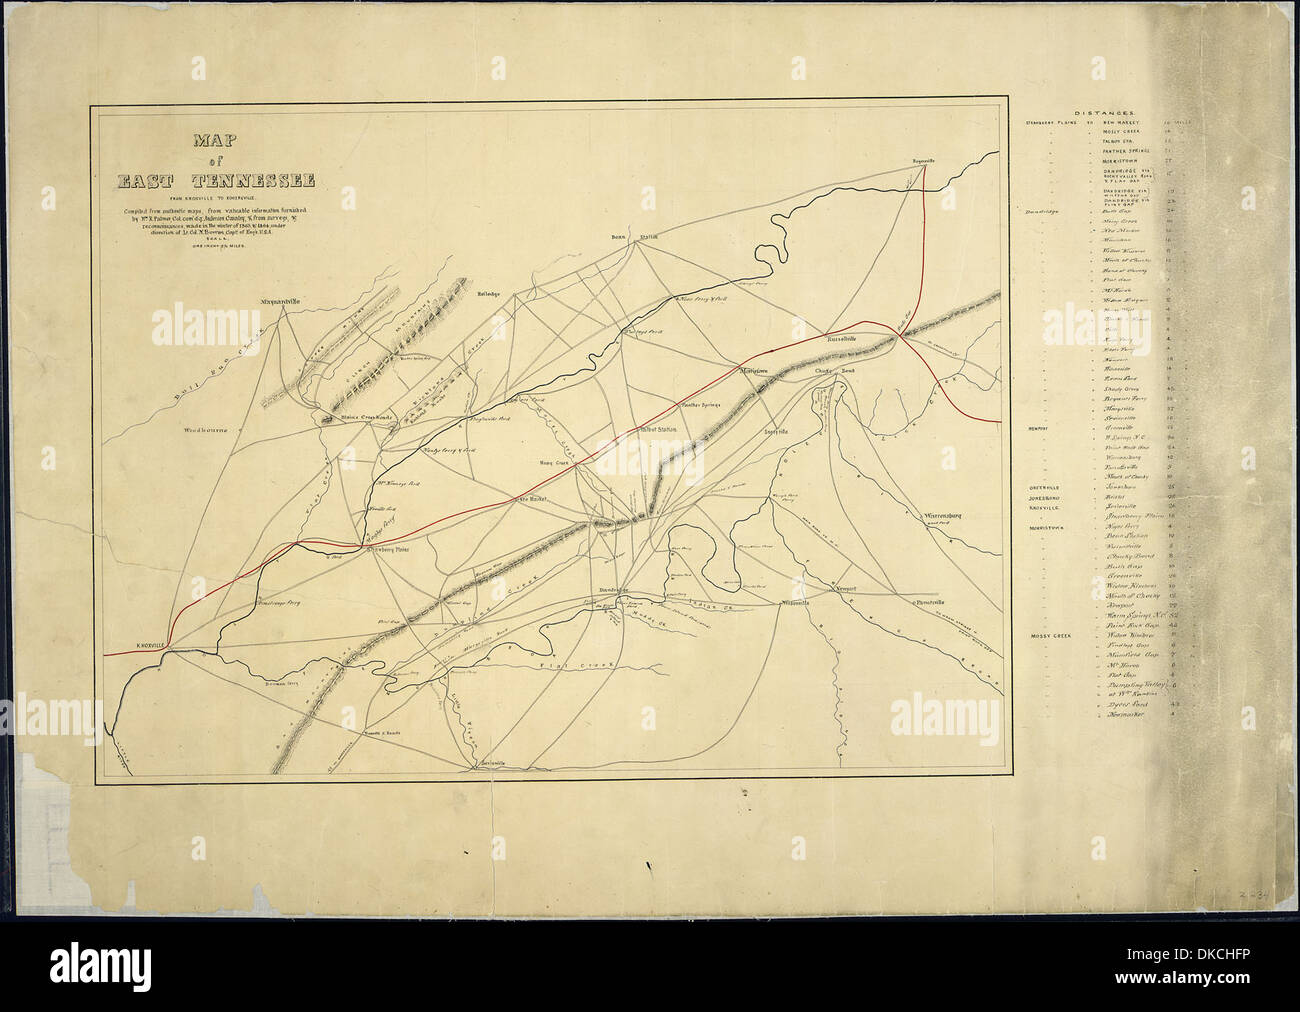 Map of East Tennessee from Knoxville to Rogersville. Compiled from ...